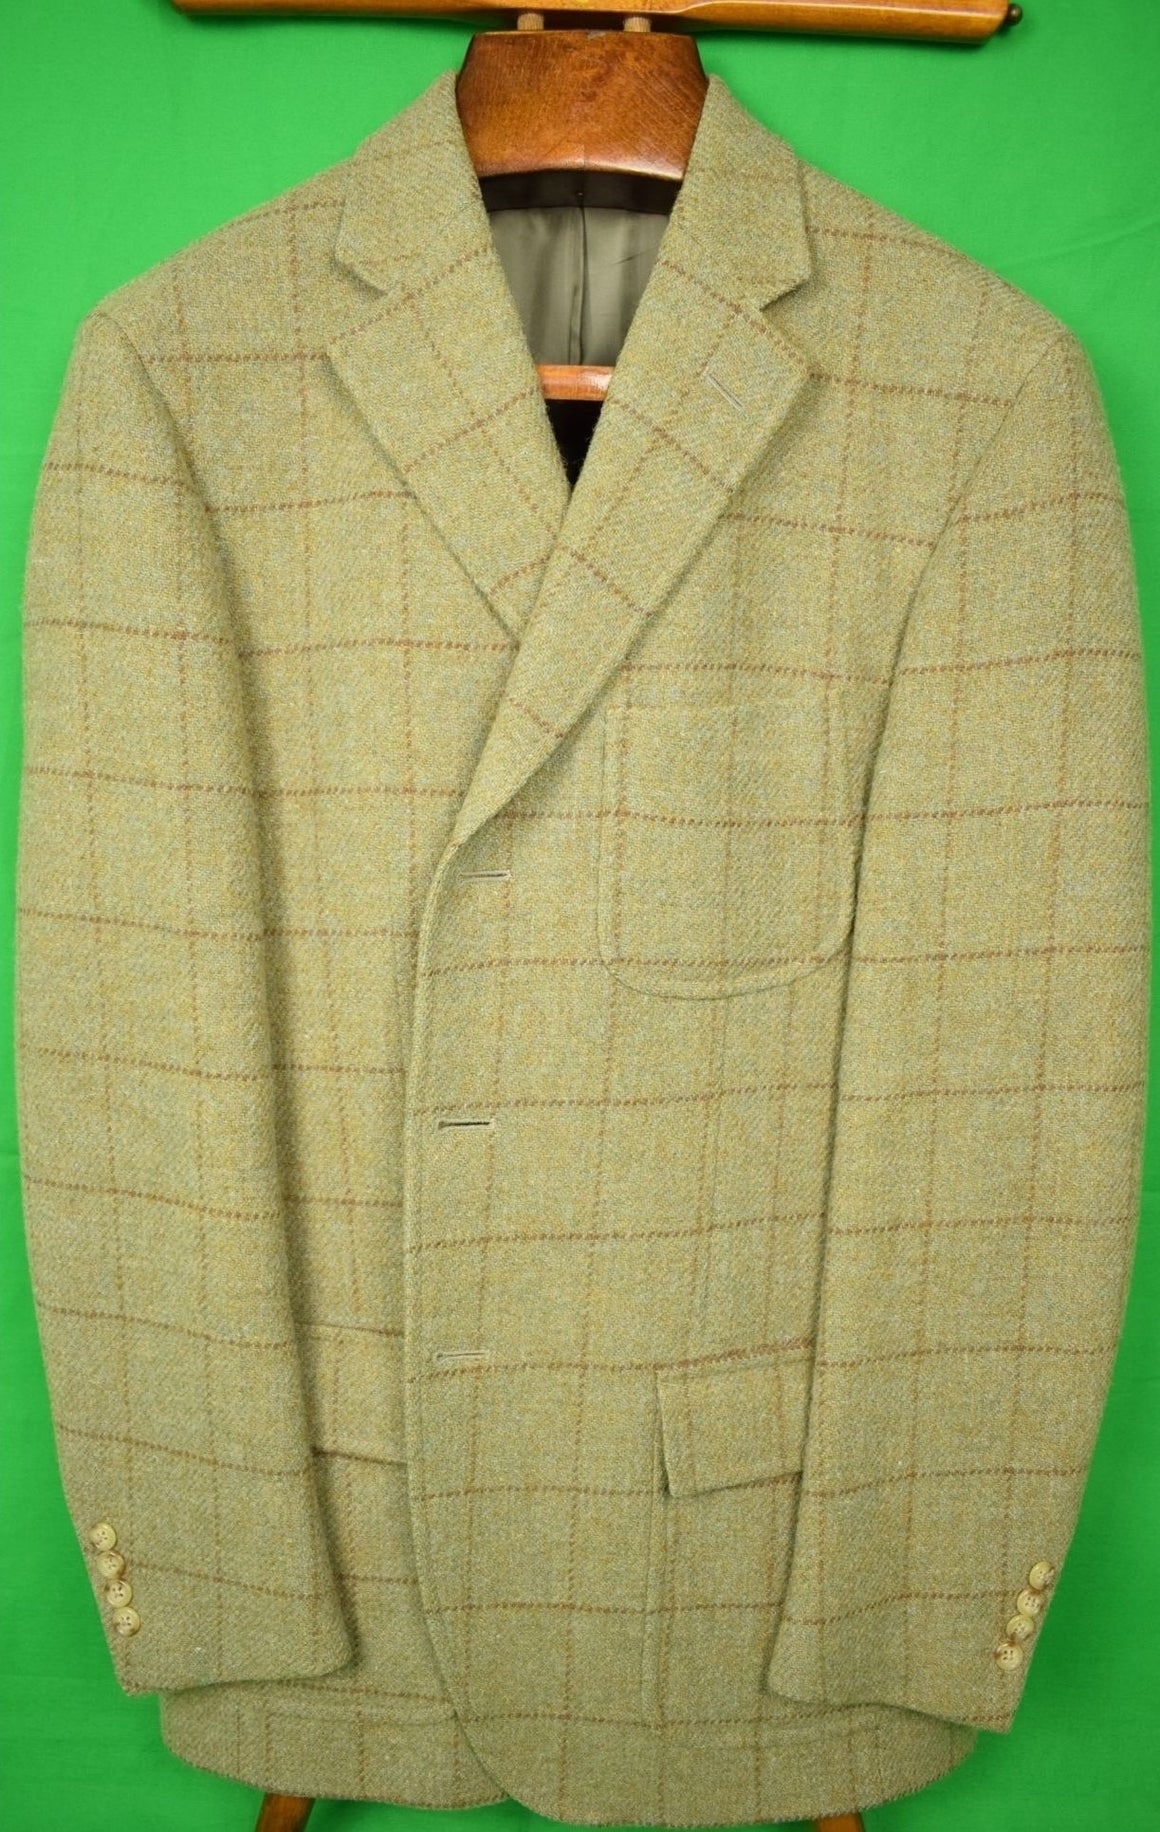 Polo Ralph Lauren Blanket Plaid Italian Wool Tweed Jacket Sz 42L